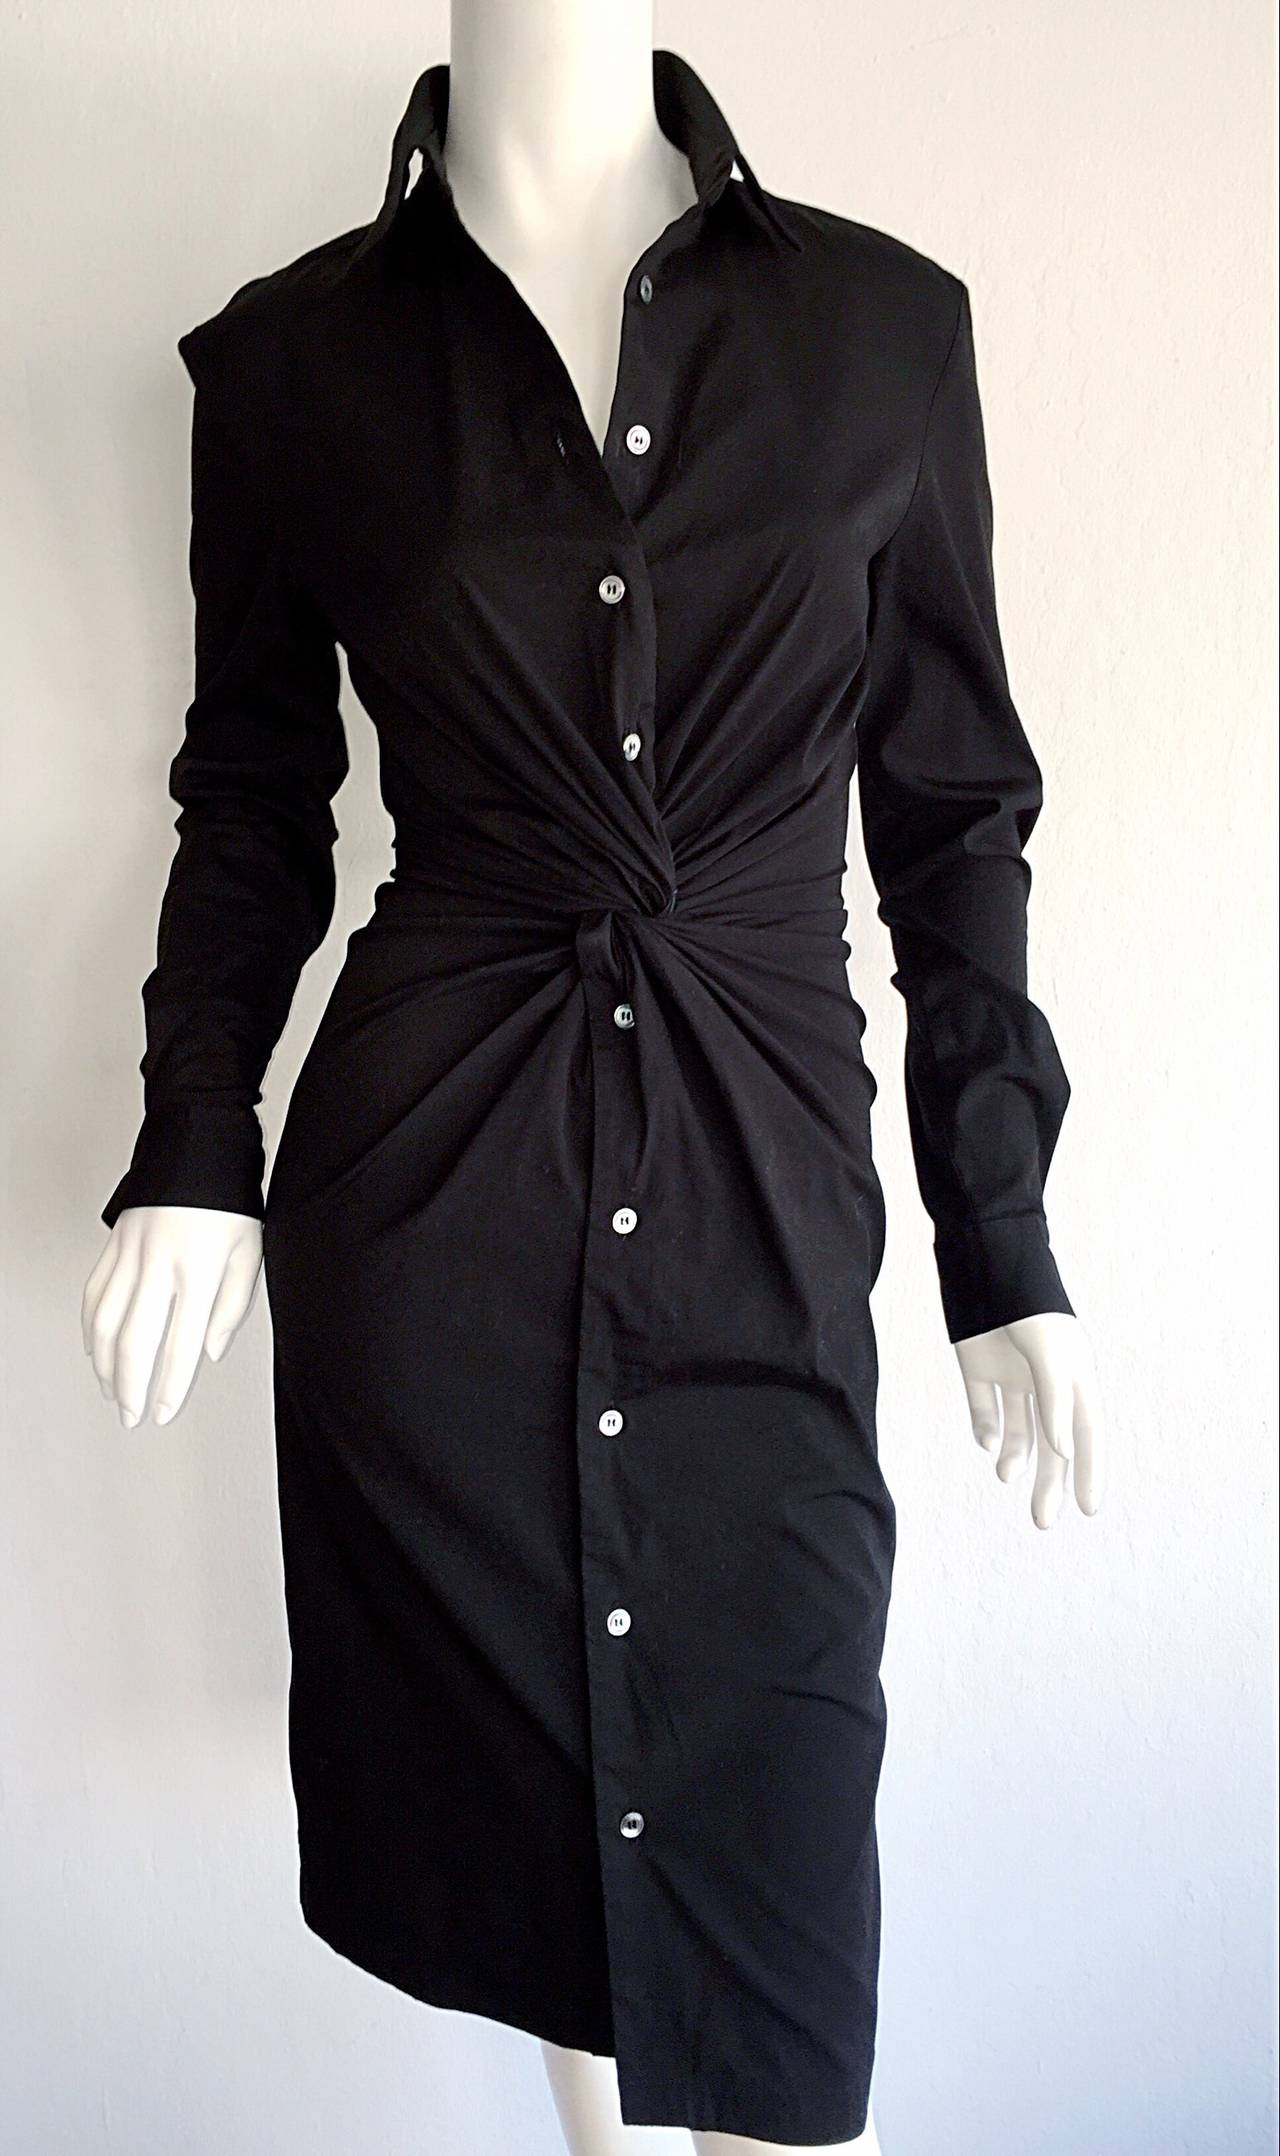 Ultimate Michael Kors Collection Black ' Twisted ' Shirt Dress LBD Size 2 9